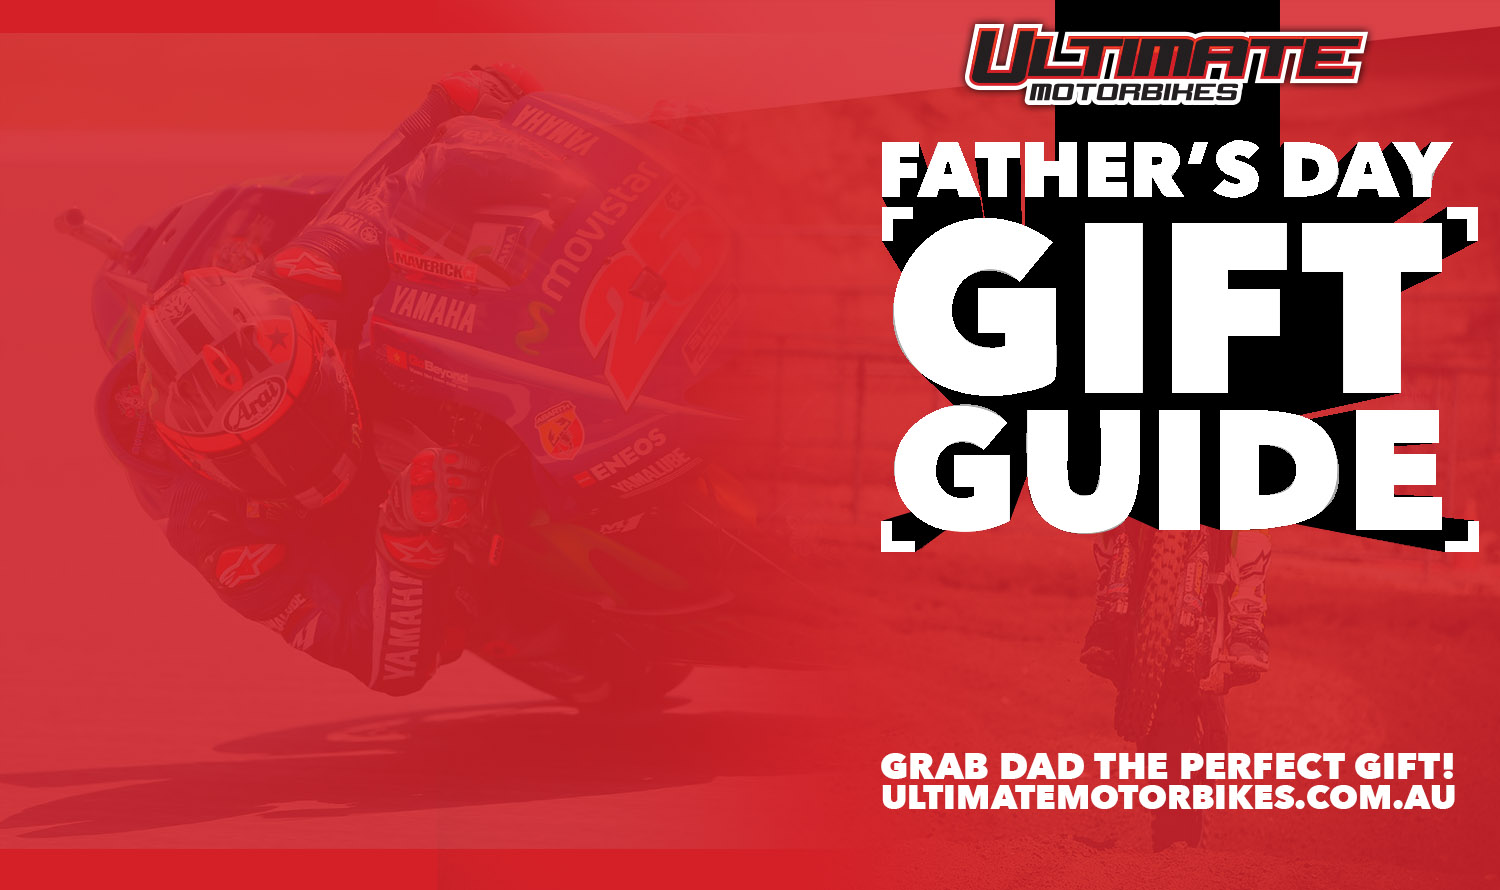 UltimateMotorbikes-HPB-FathersDayGiftGuide-Aug19-MR